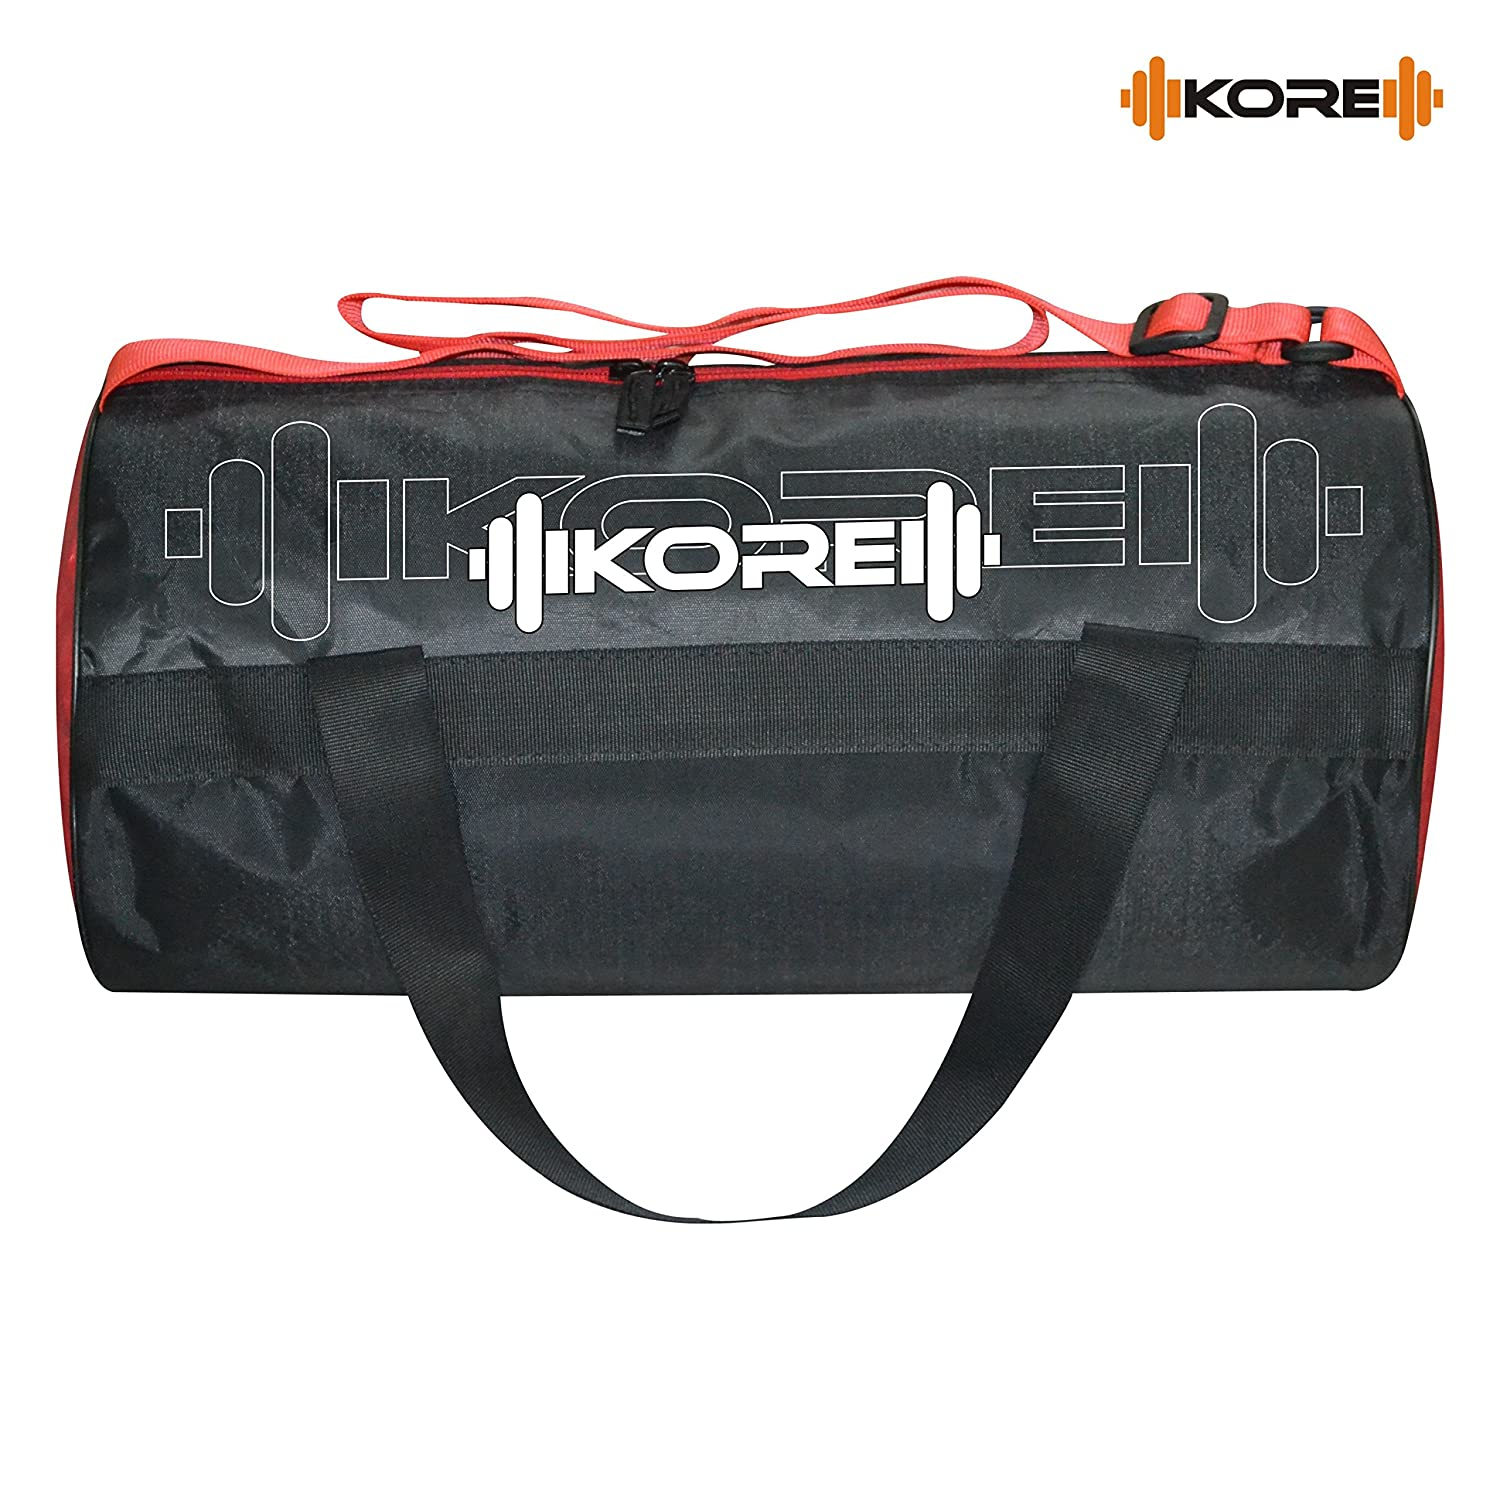 Kore ACE-3.0 Gym Bag with Carry Handels